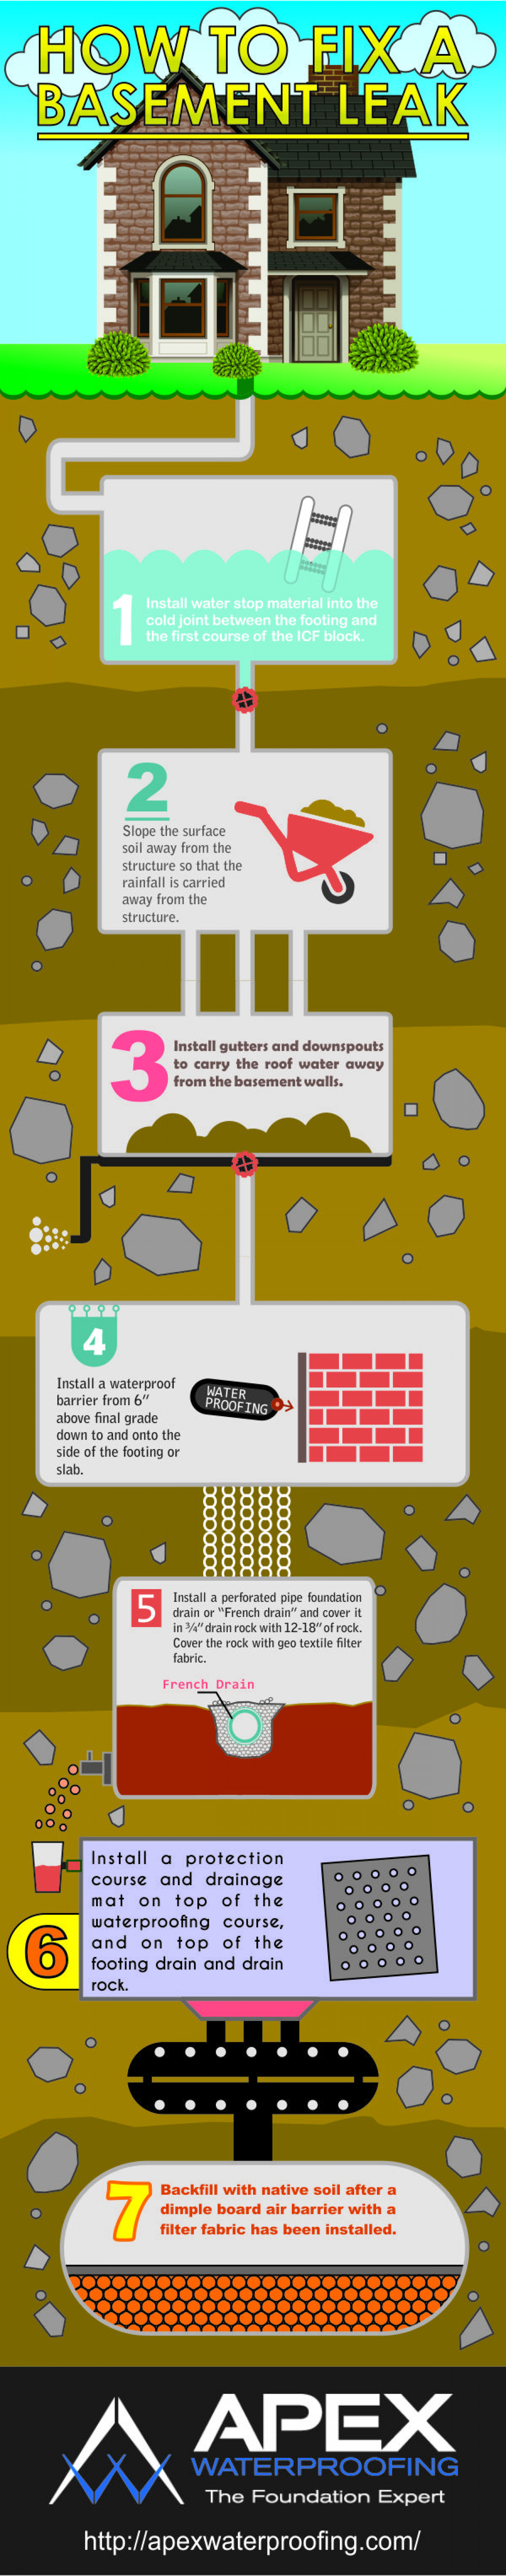 How to Fix a Basement Leak Infographic